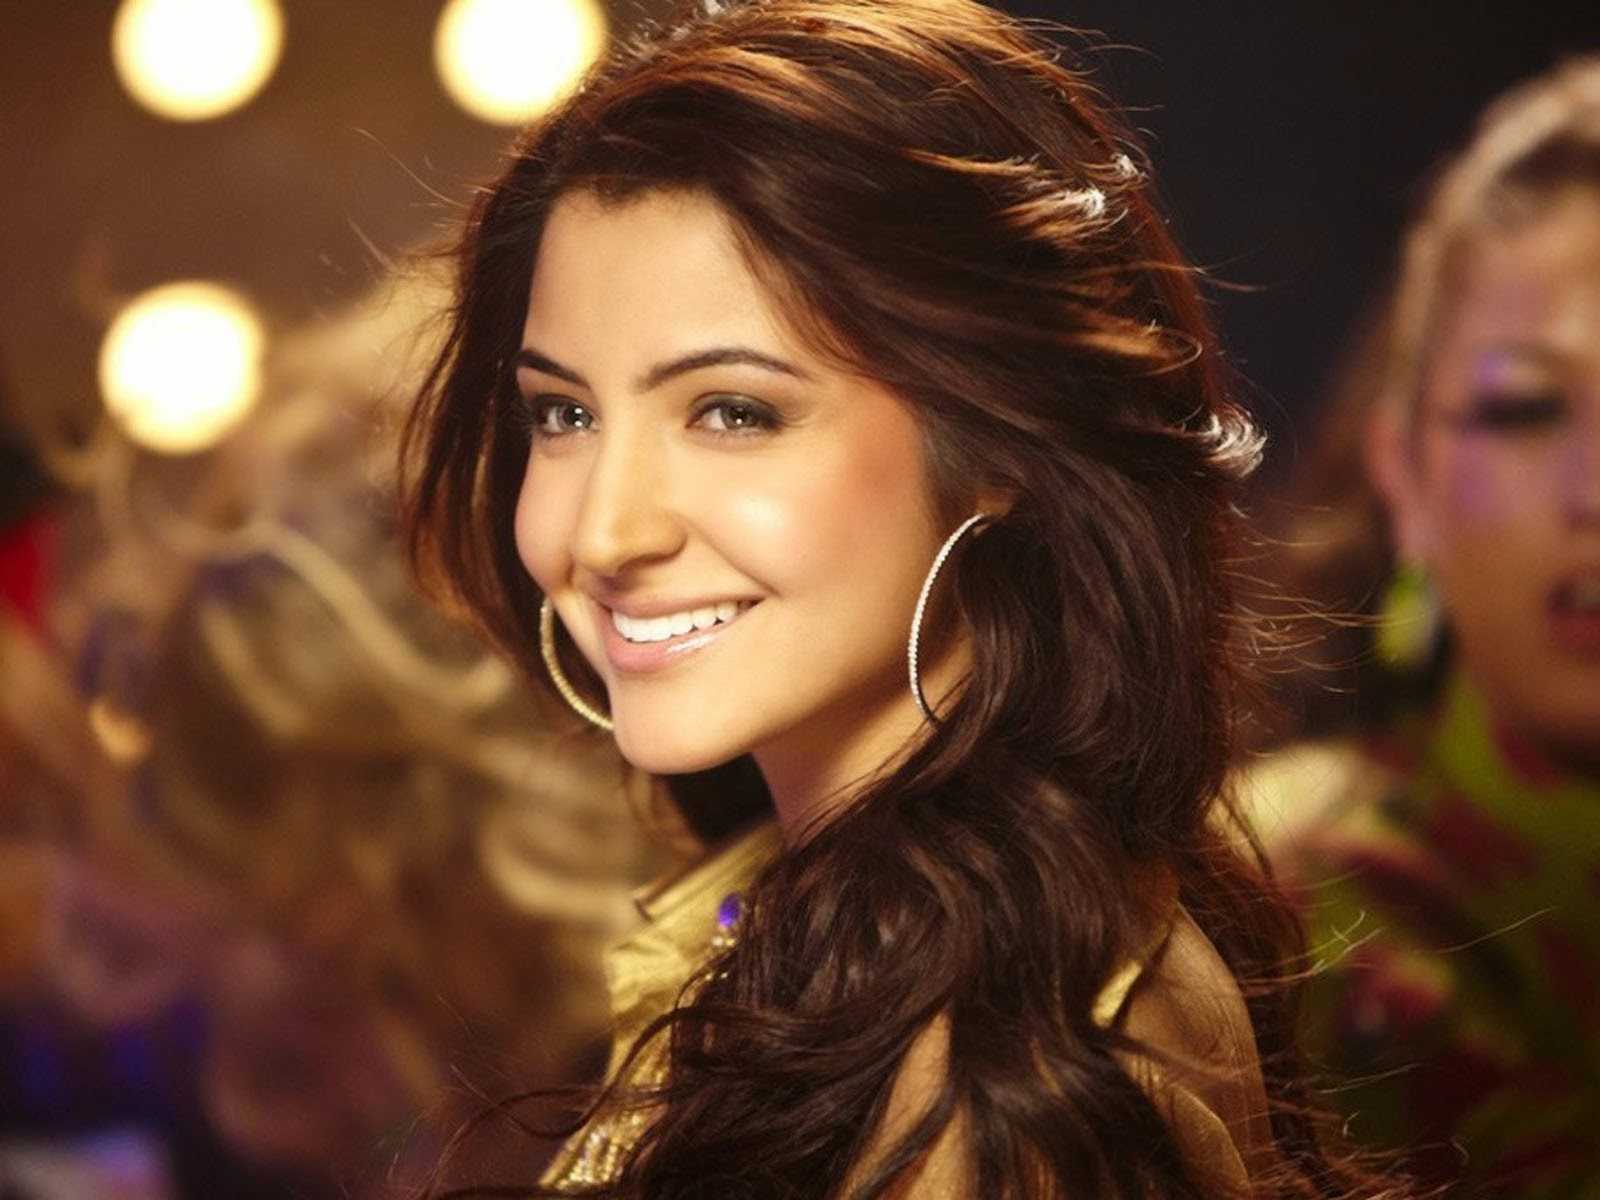 anushka sharma hd wallpaper - pic wallpaper hd